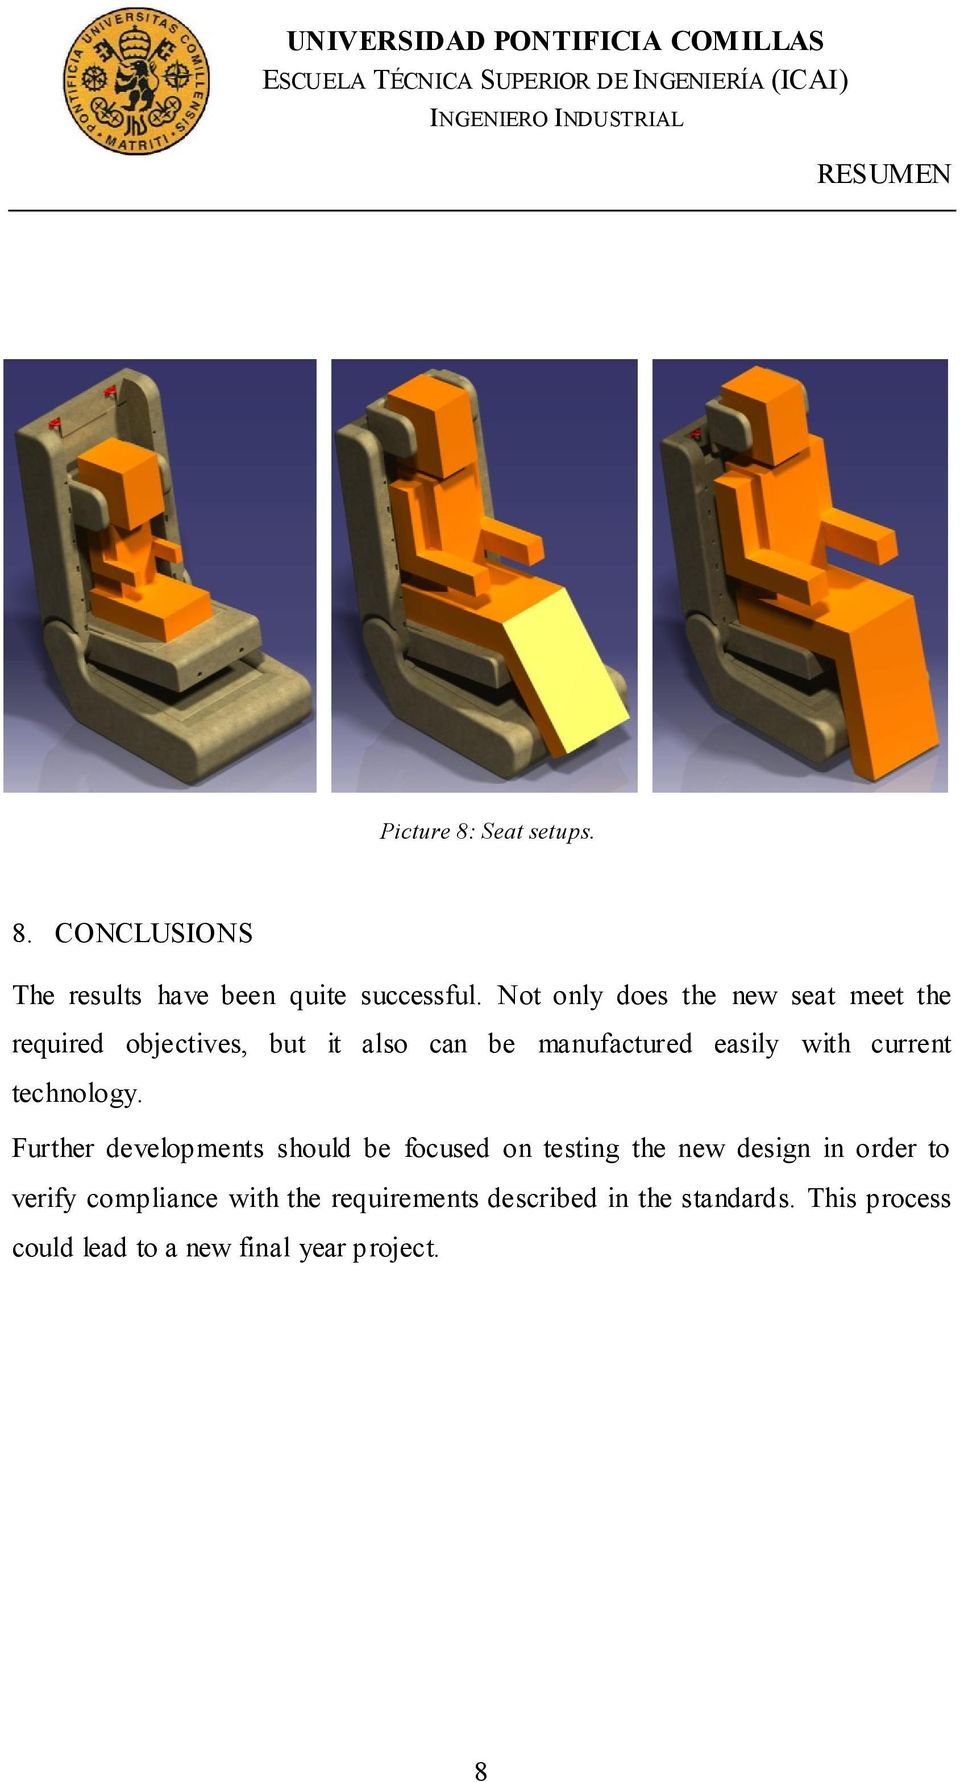 Not only does the new seat meet the required objectives, but it also can be manufactured easily with current technology.